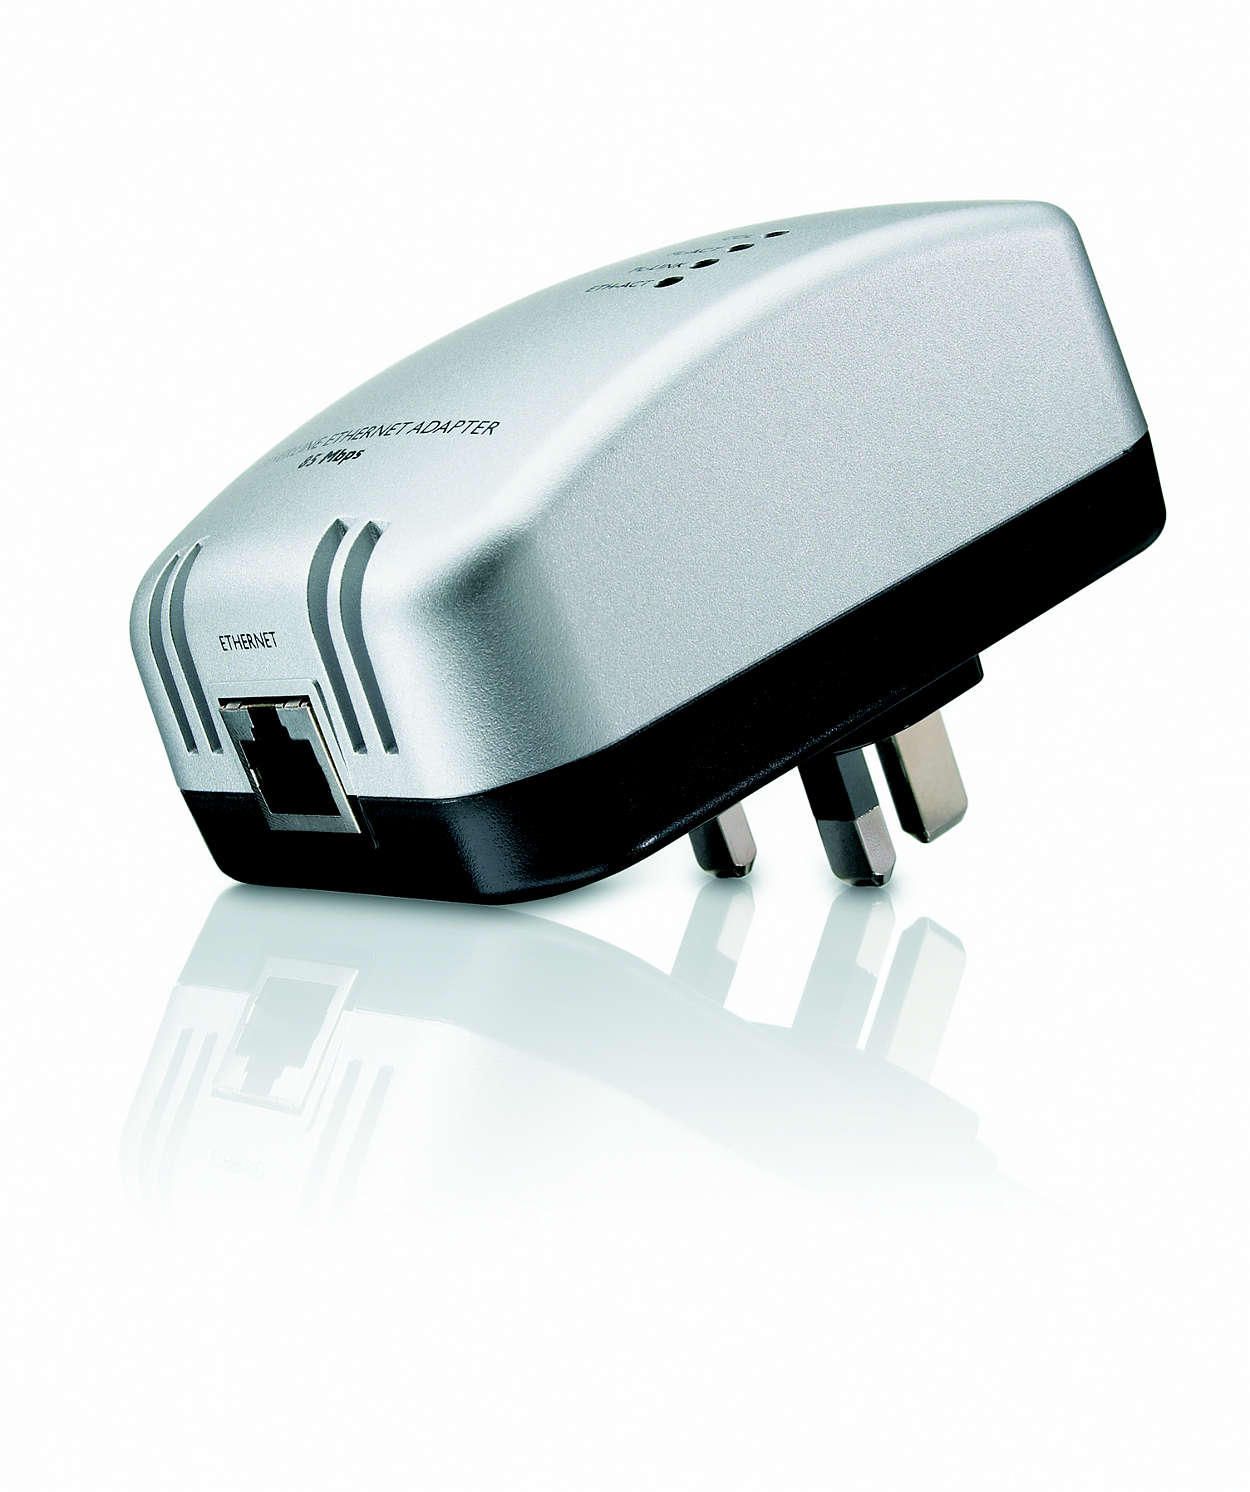 powerline ethernet adapter sye philips image